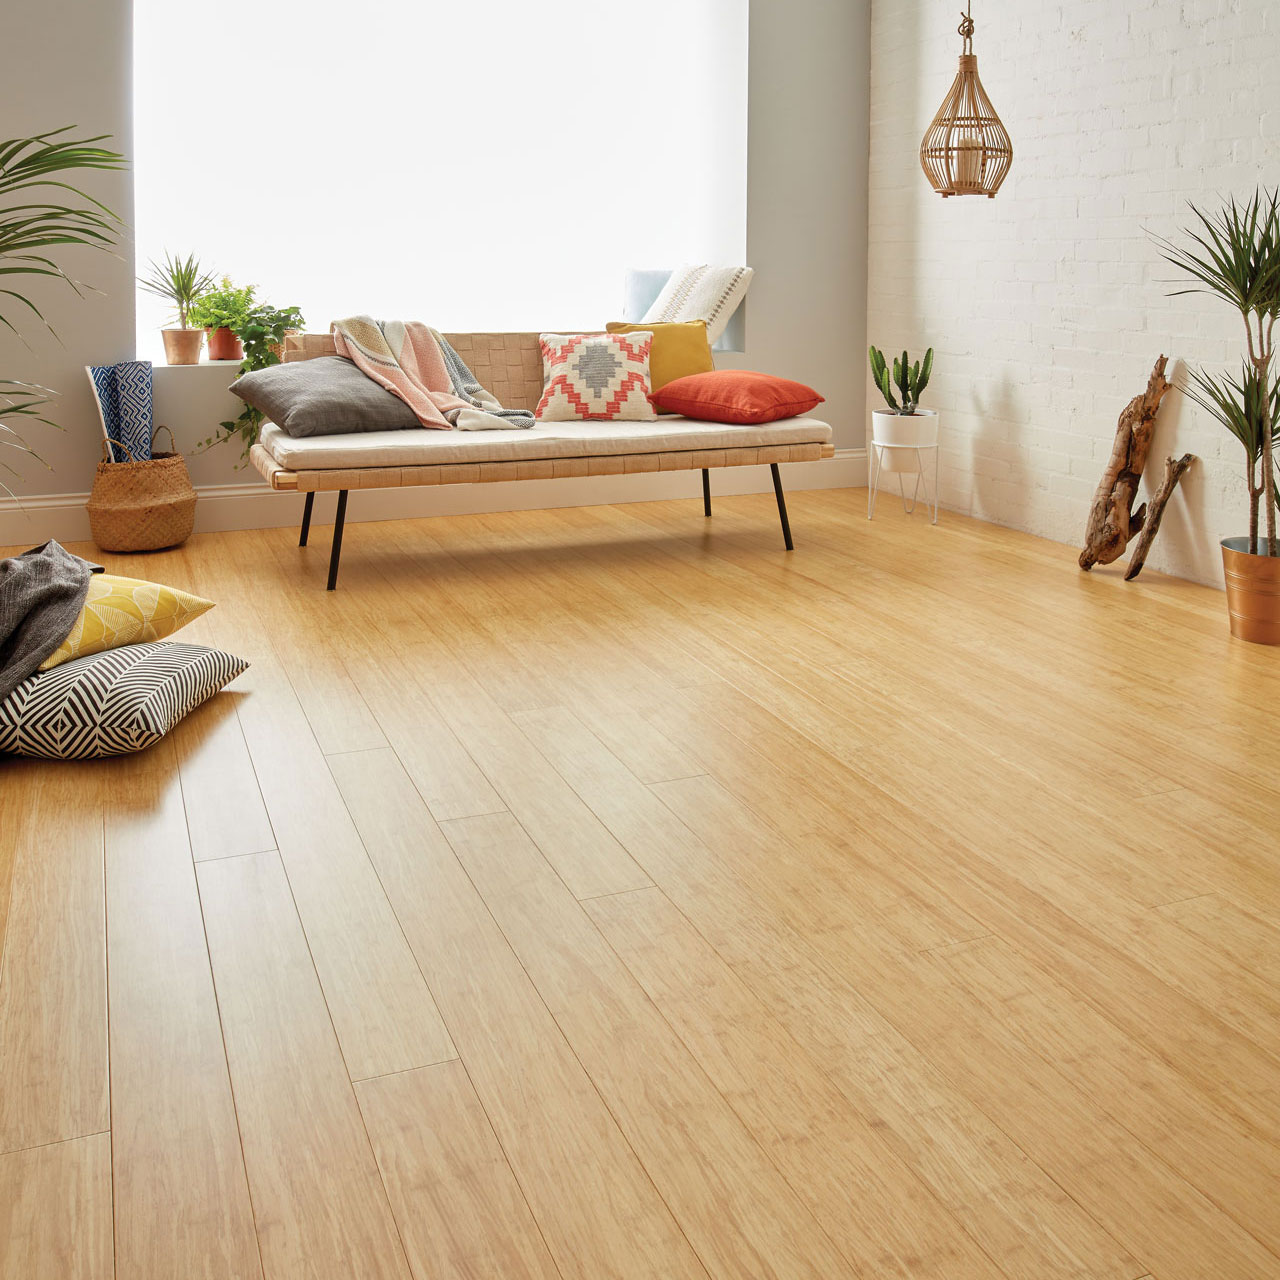 Oxwich natural strand bamboo flooring woodpecker flooring for At floor or on floor